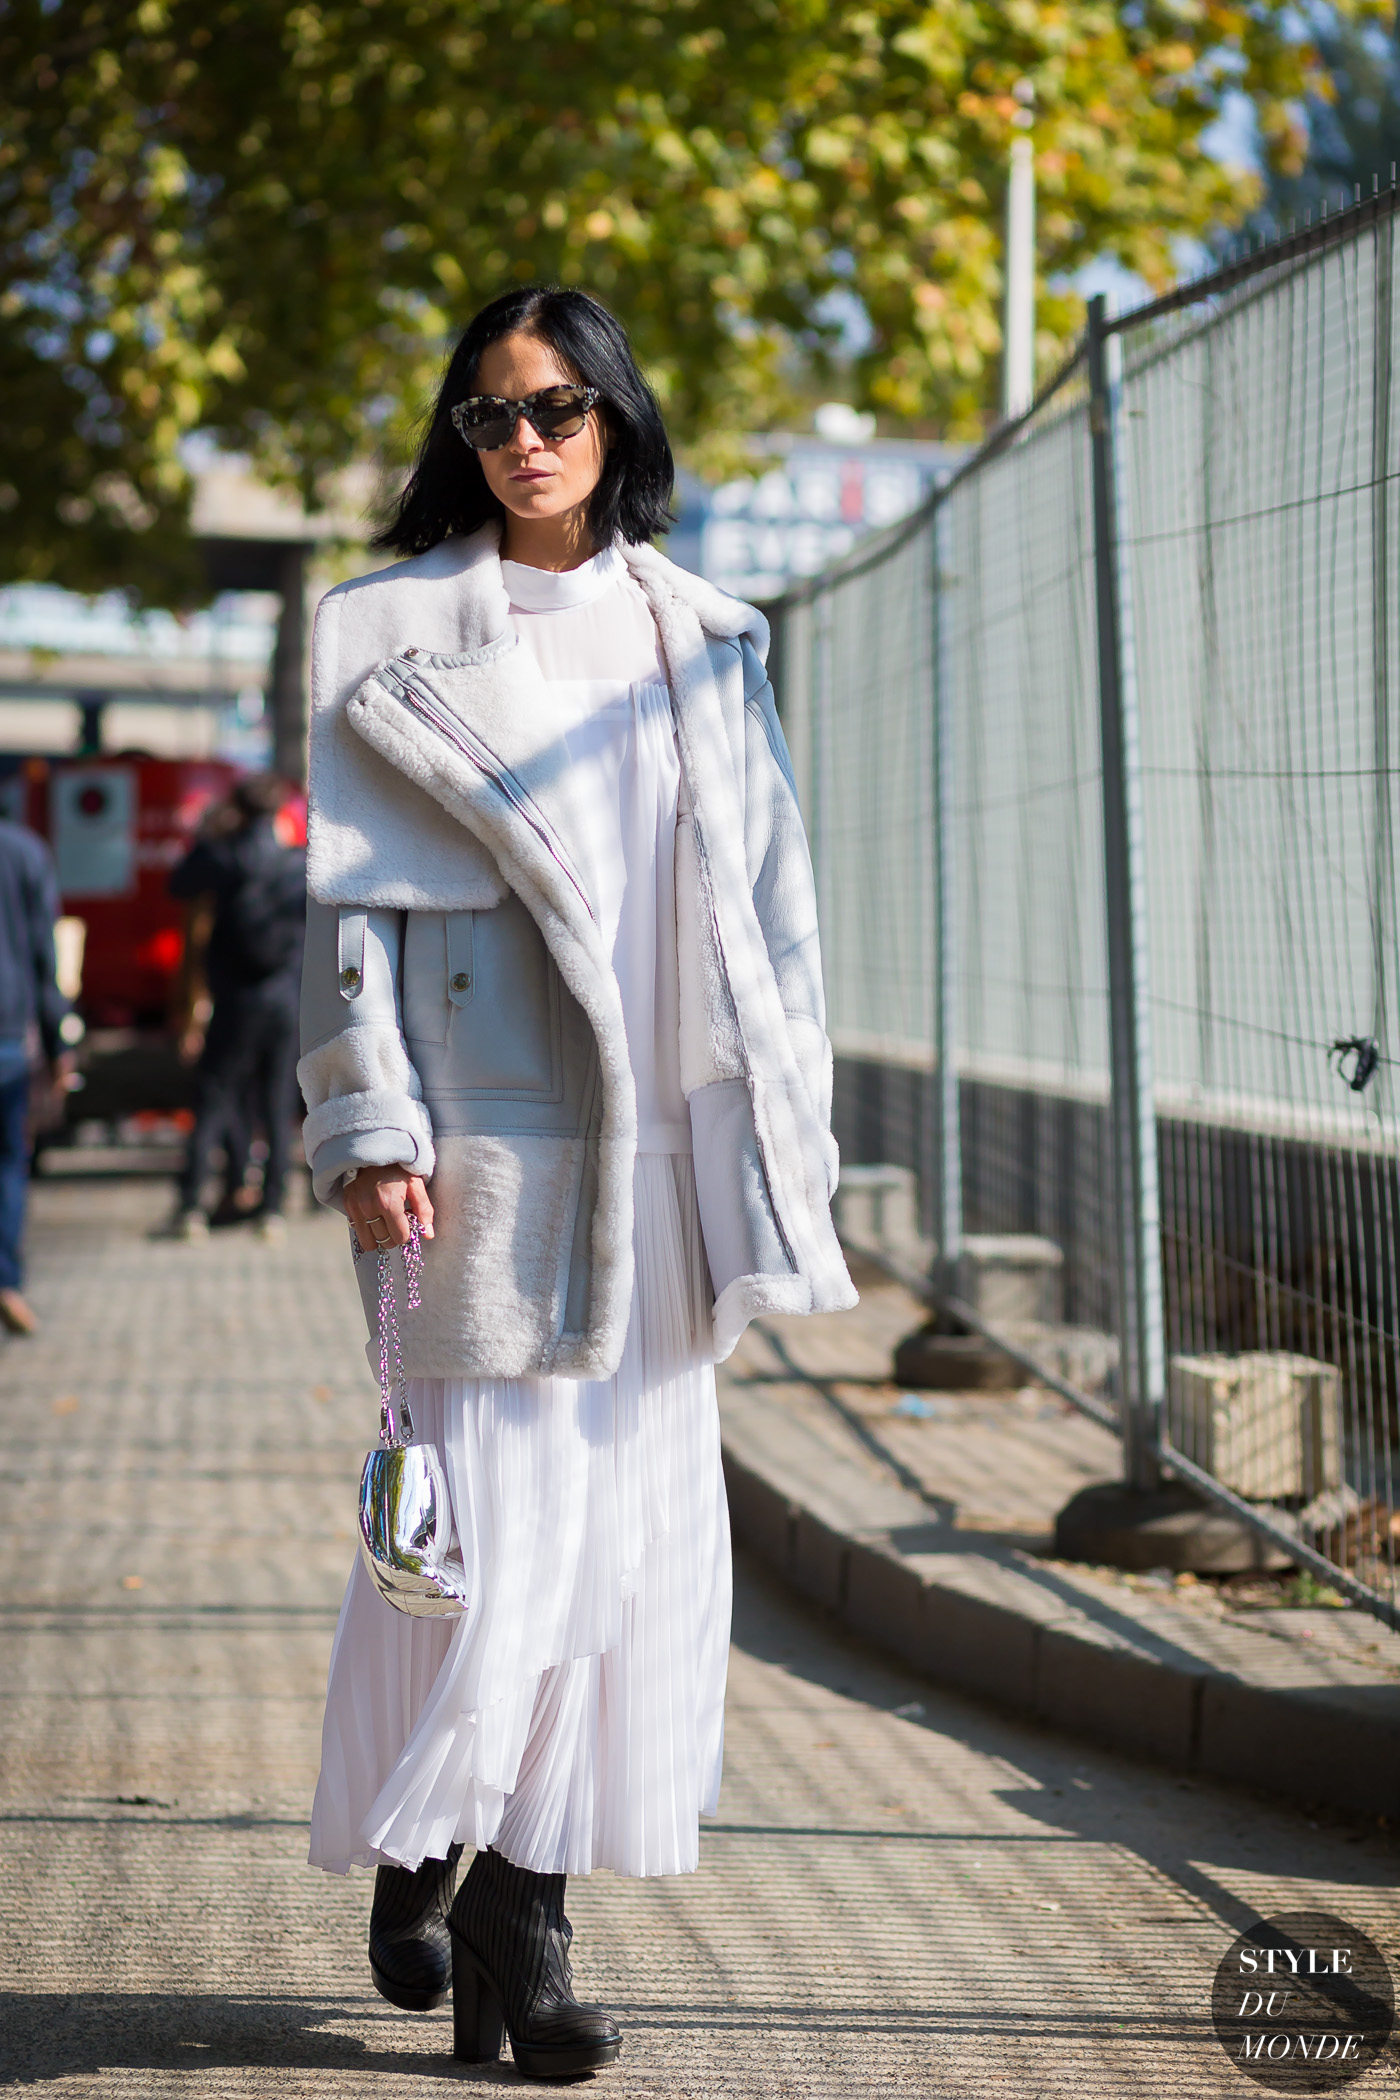 Leigh Lezark Street Style Street Fashion Streetsnaps by STYLEDUMONDE Street Style Fashion Photography